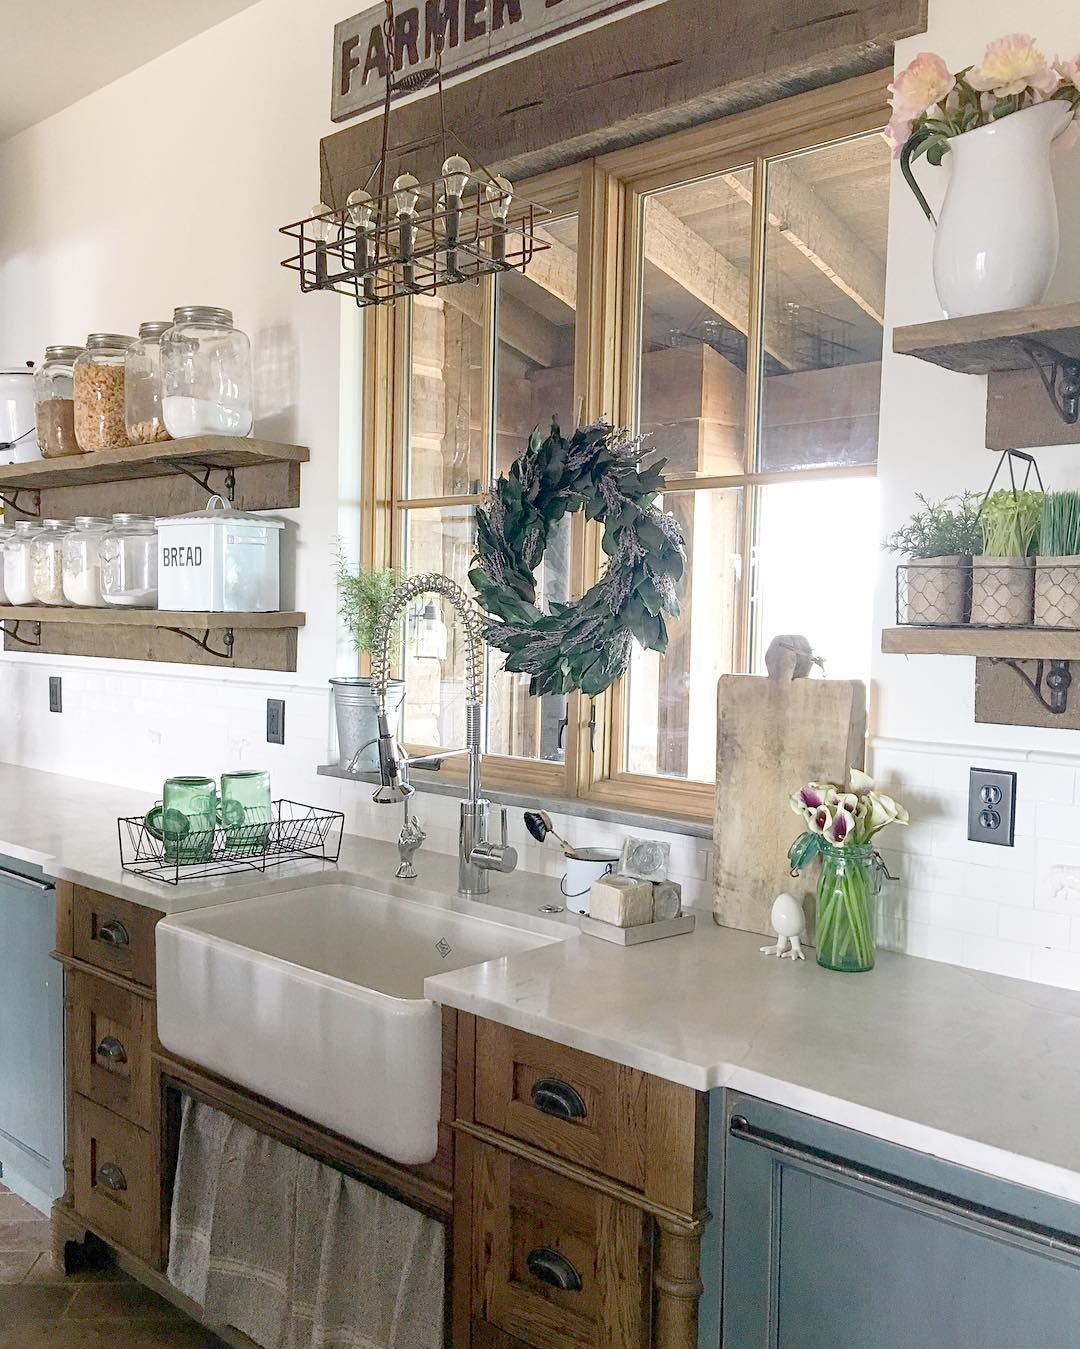 Farmhouse A Sink With Oak Cabinetry And Mismatched Blue